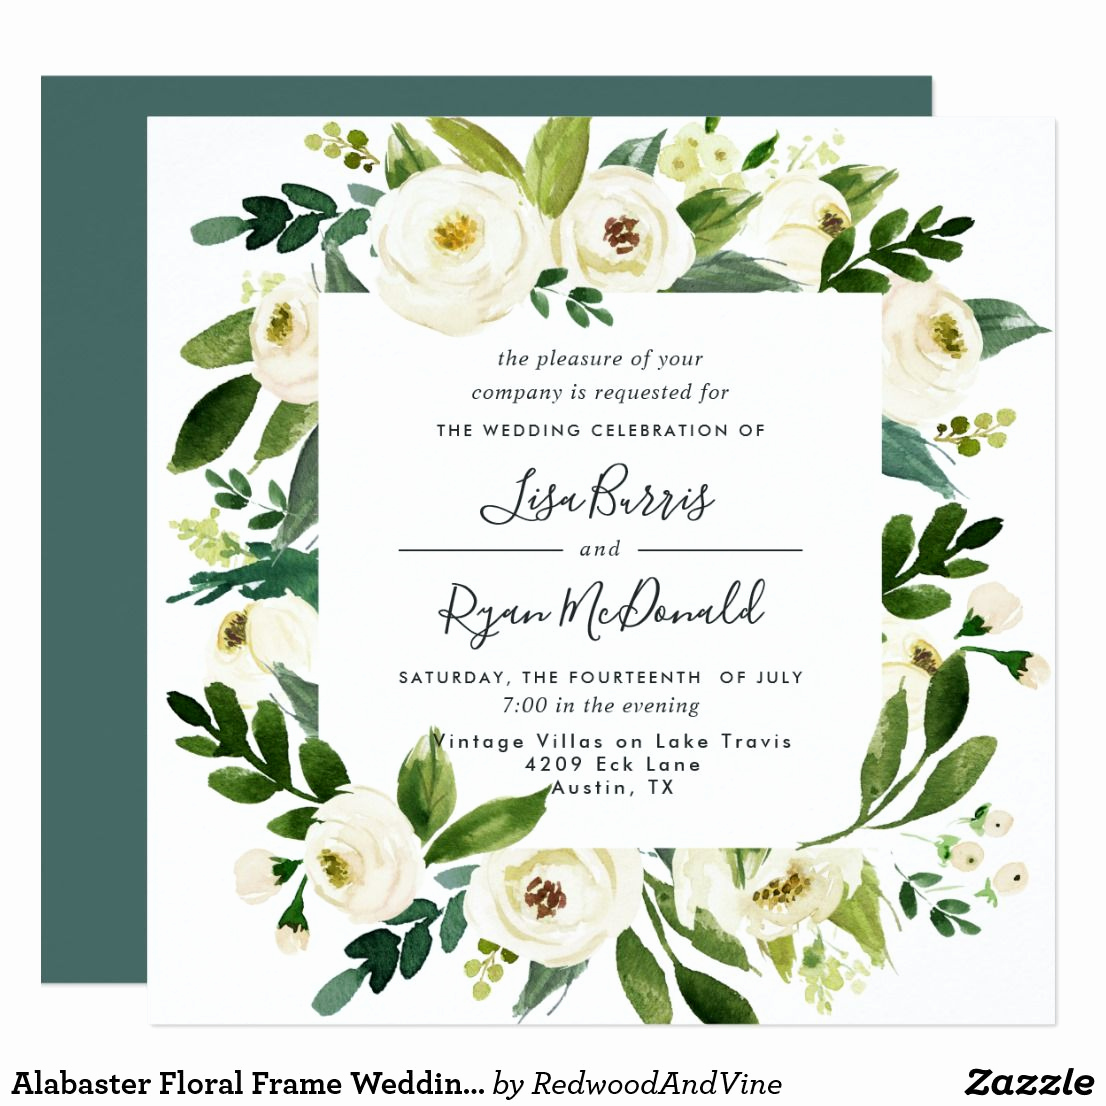 Wedding Invitation Frame Ideas Beautiful Alabaster Floral Frame Wedding Invitation